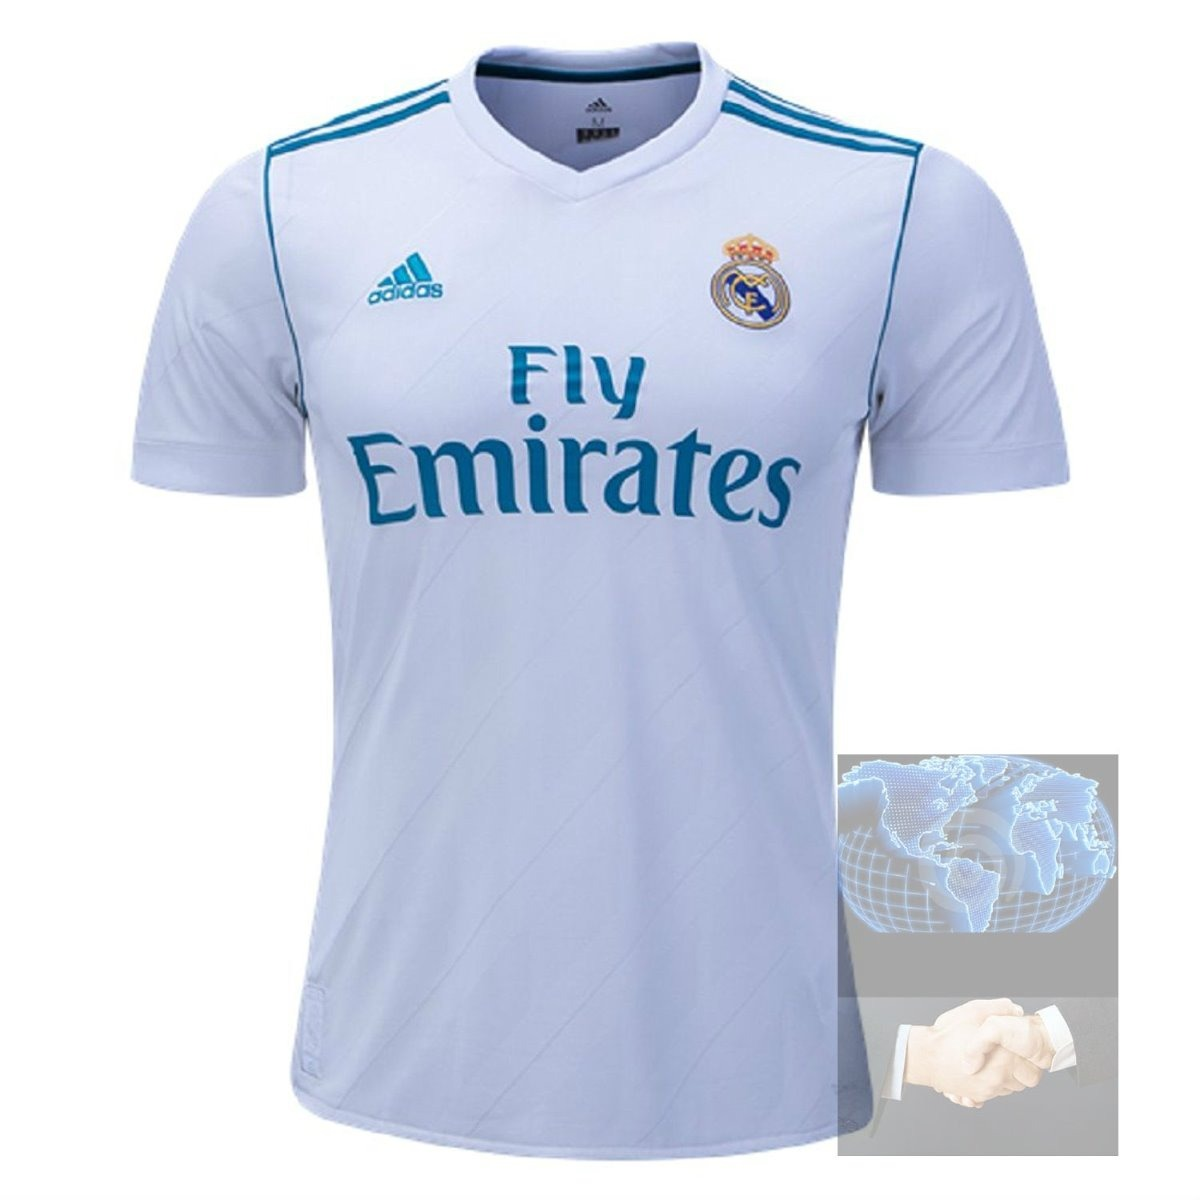 98ac25c56e24a Jersey Real Madrid Blanca adidas Local Nueva 2018 Playera -   479.00 ...